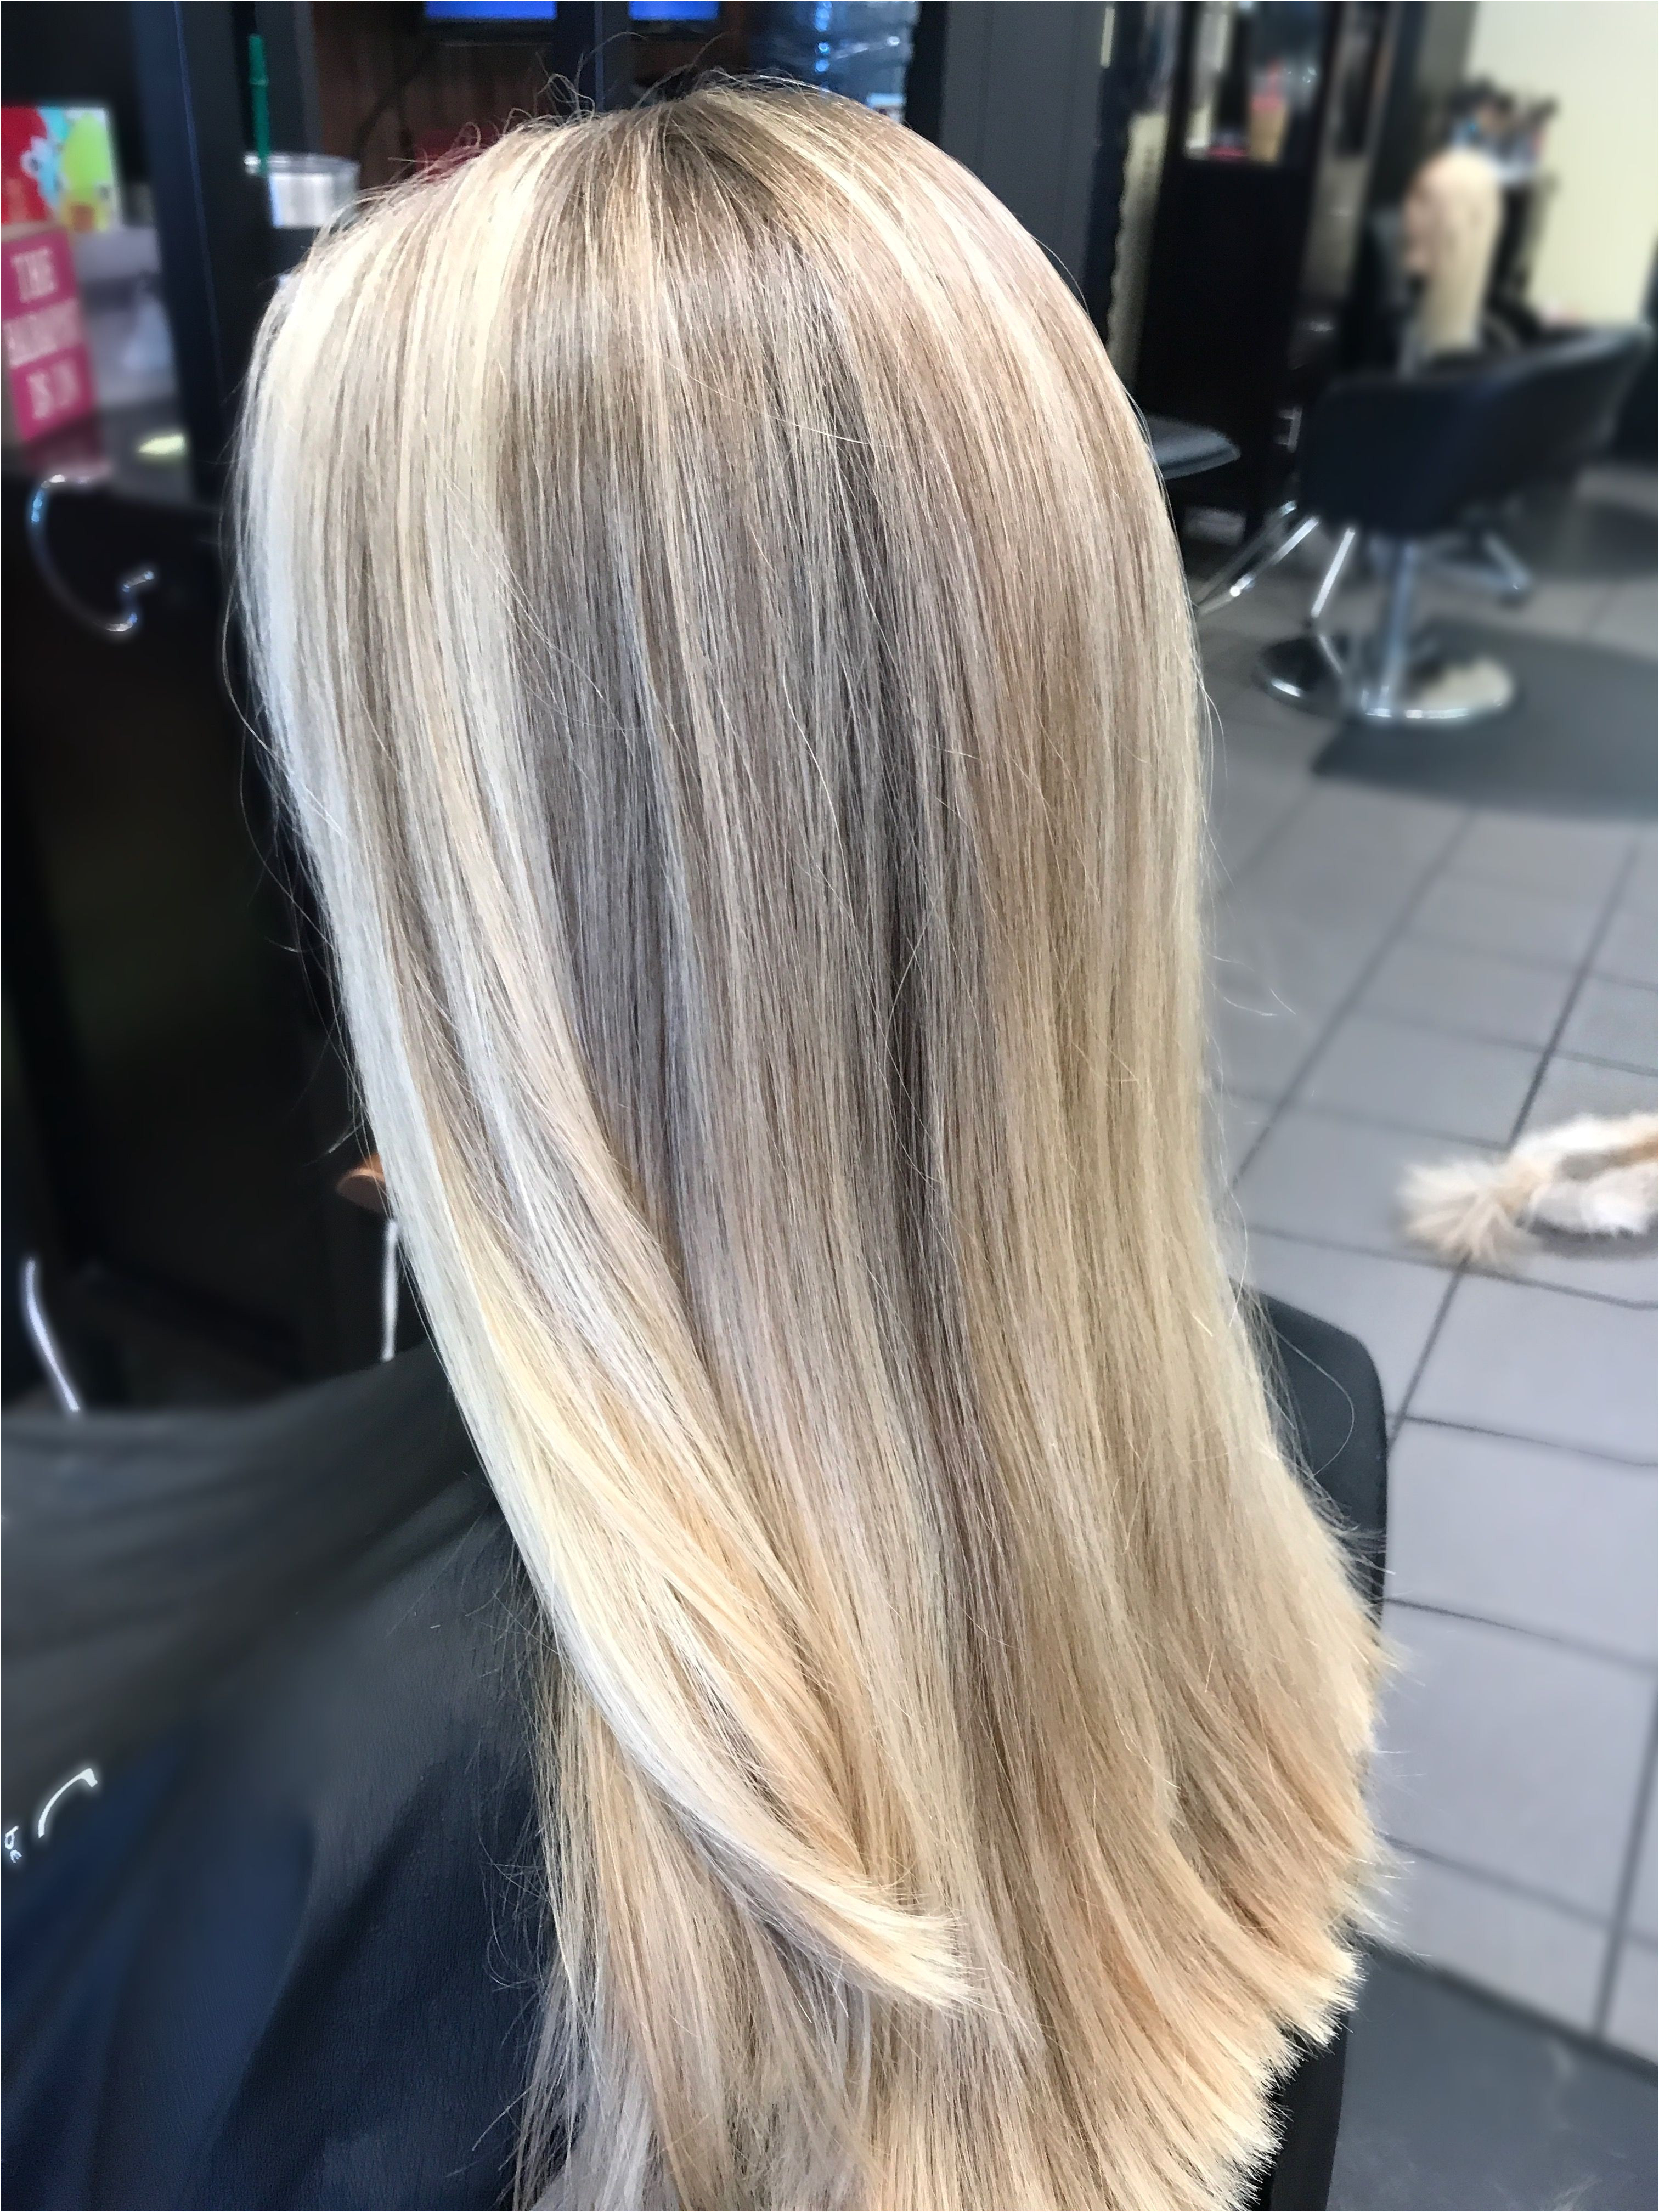 Blonde Hair Stylist Elegant Hairstyles With Blonde Highlights Collection I Pinimg 600x 18 0e 0d